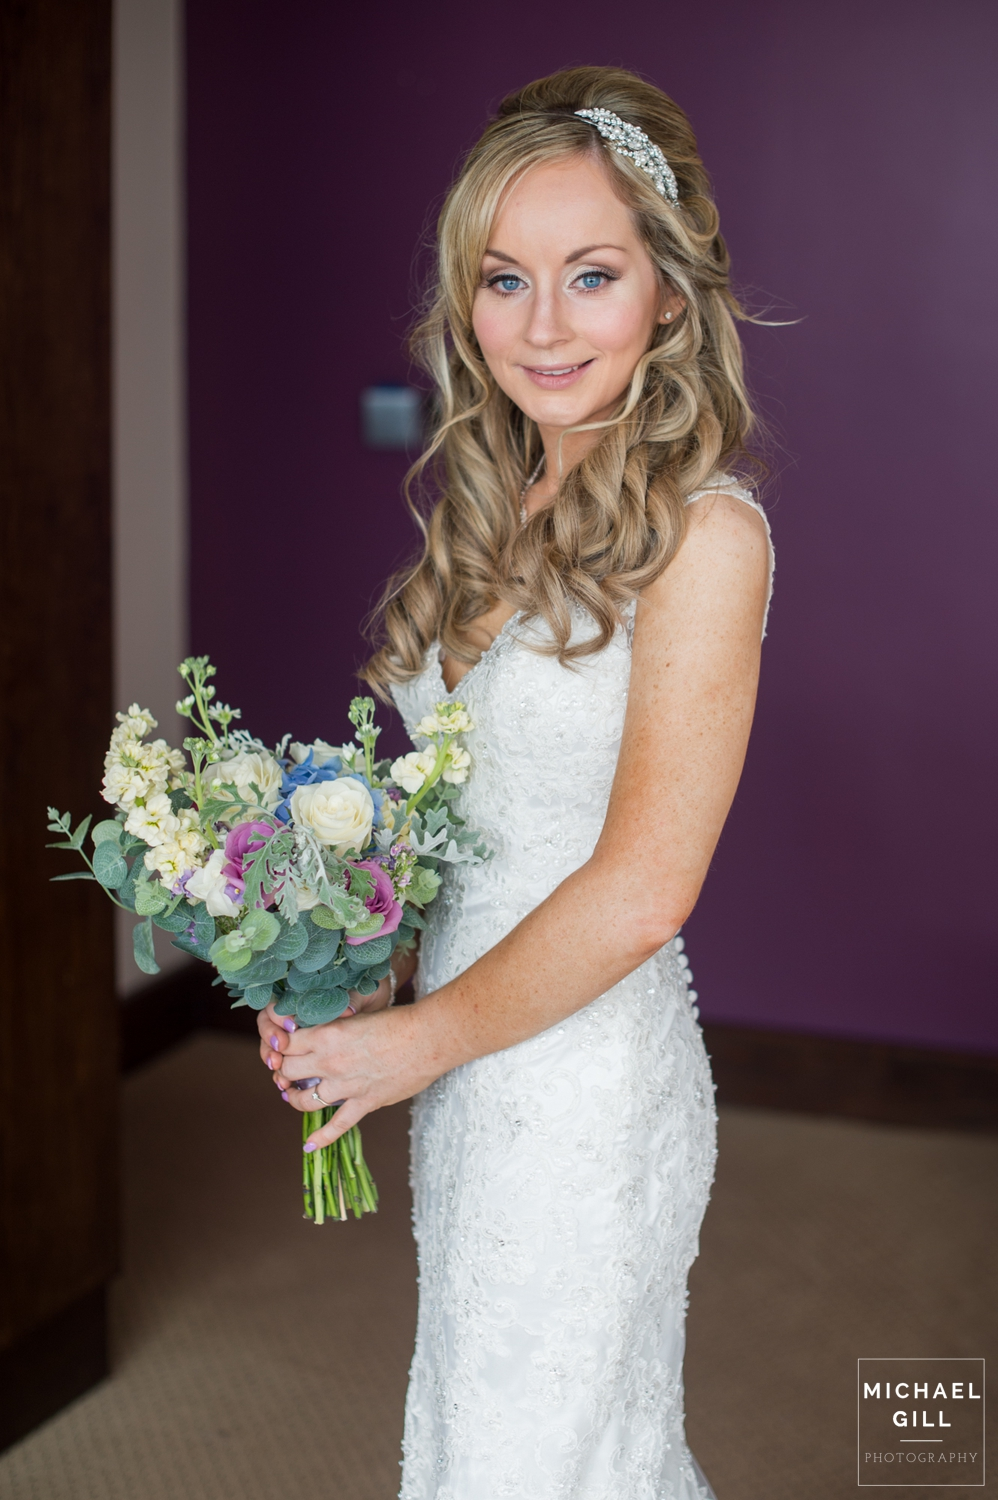 Michael_Gill_Photography_Redcastle_Hotel_ Wedding-.jpg